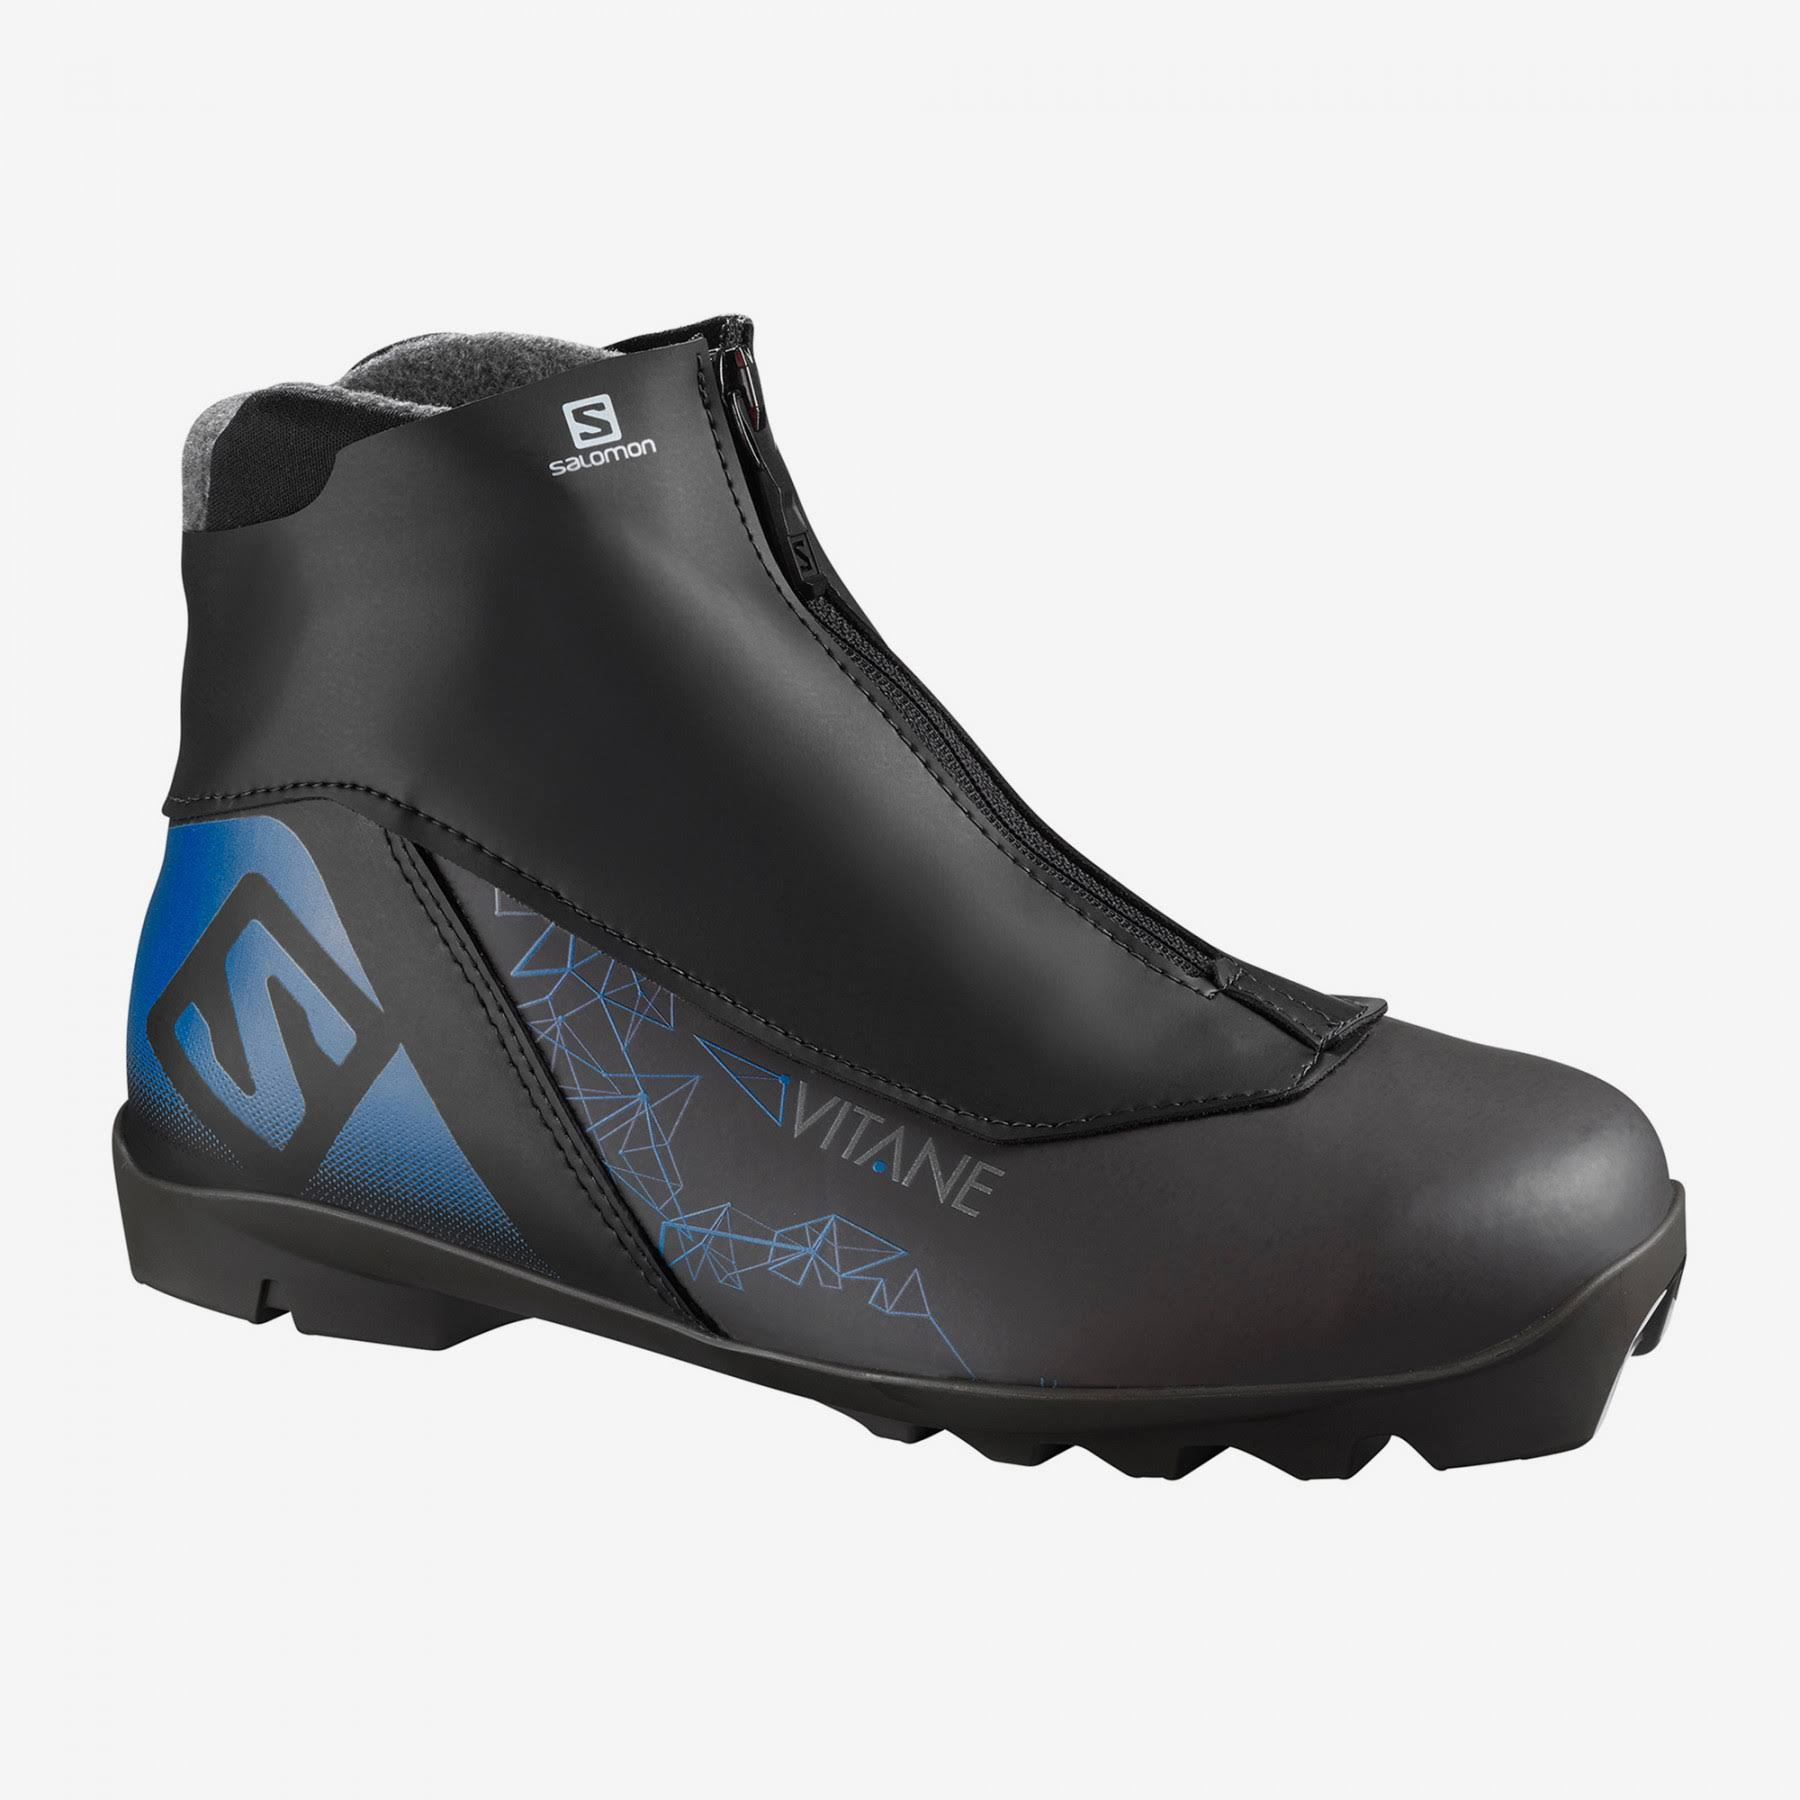 Salomon - Vitane Prolink Boot - 7.5